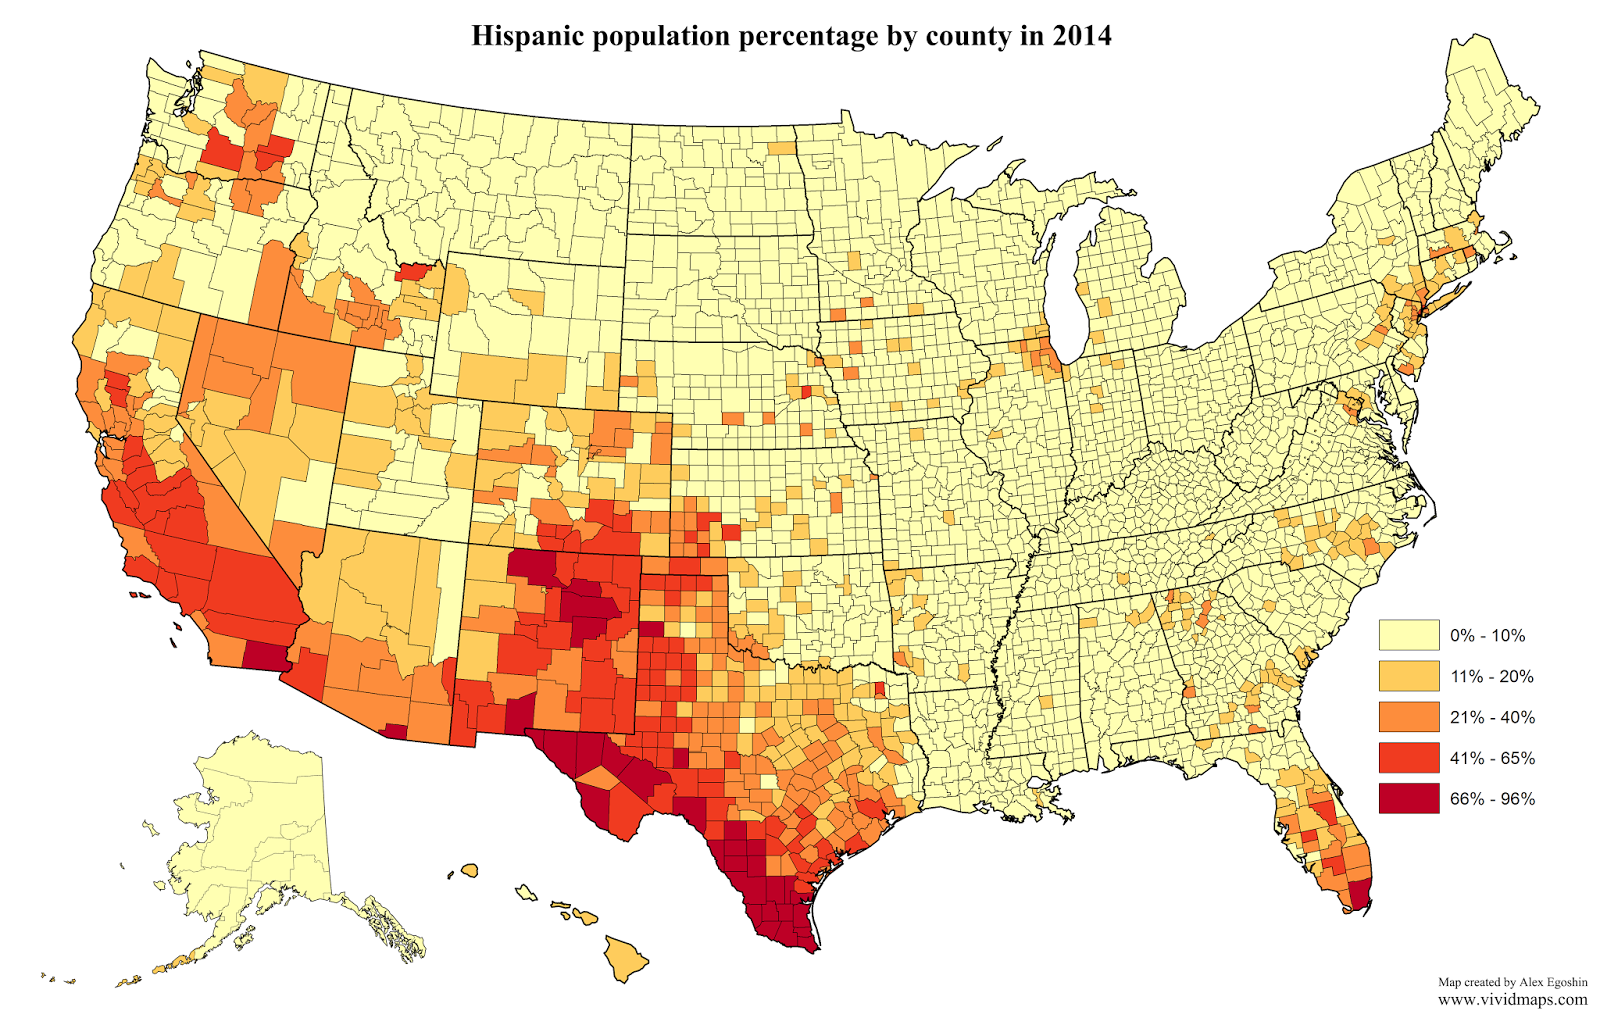 Hispanic population percentage by county